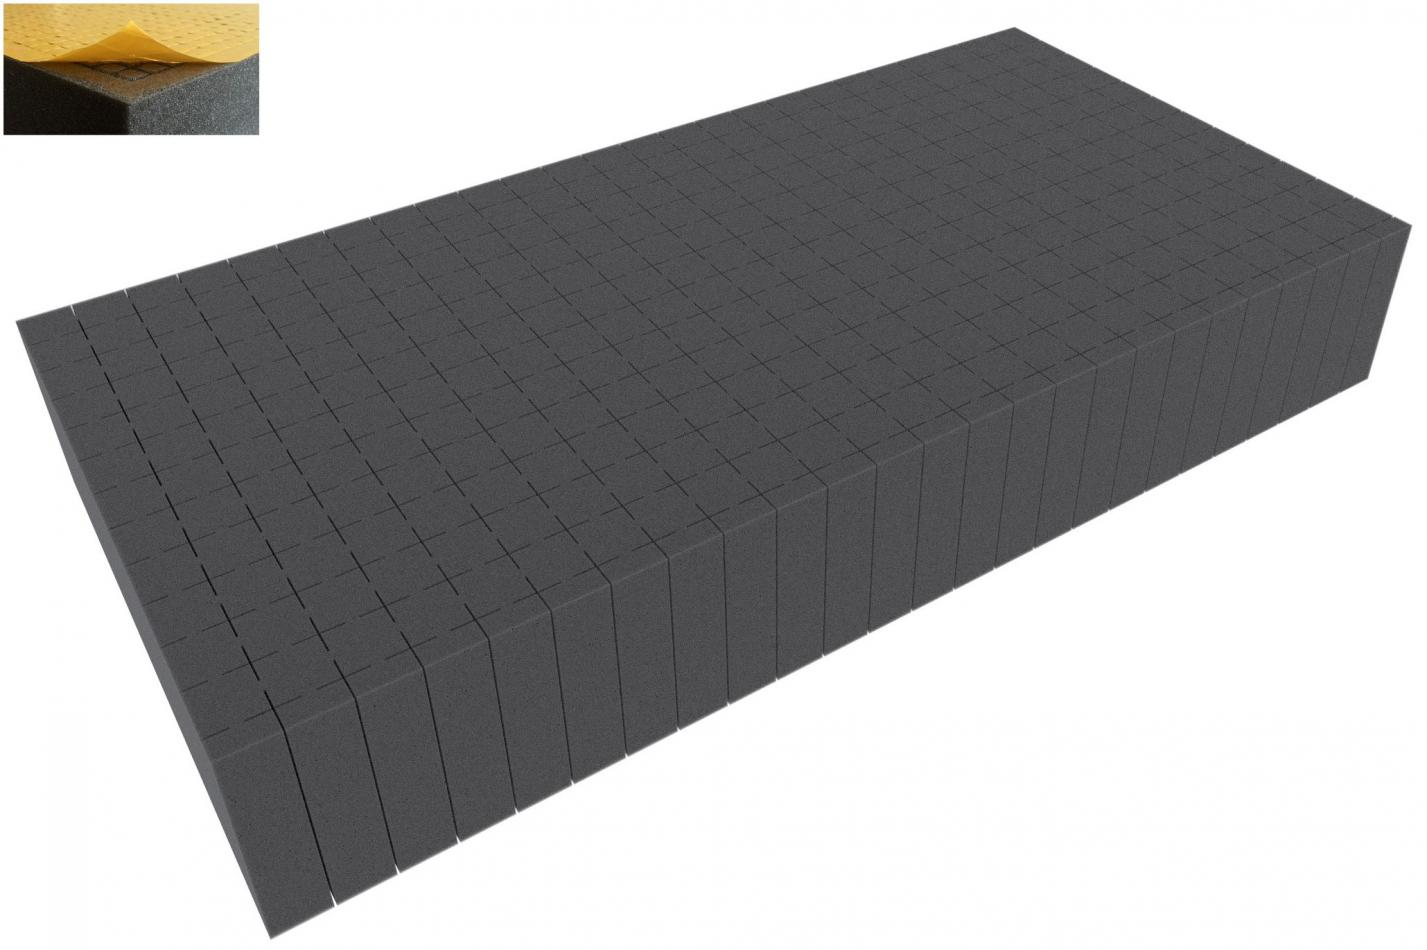 500 mm x 250 mm x 80 mm - Raster 20 mm - Pick and Pluck / Pre-Cubed foam tray self-adhesive